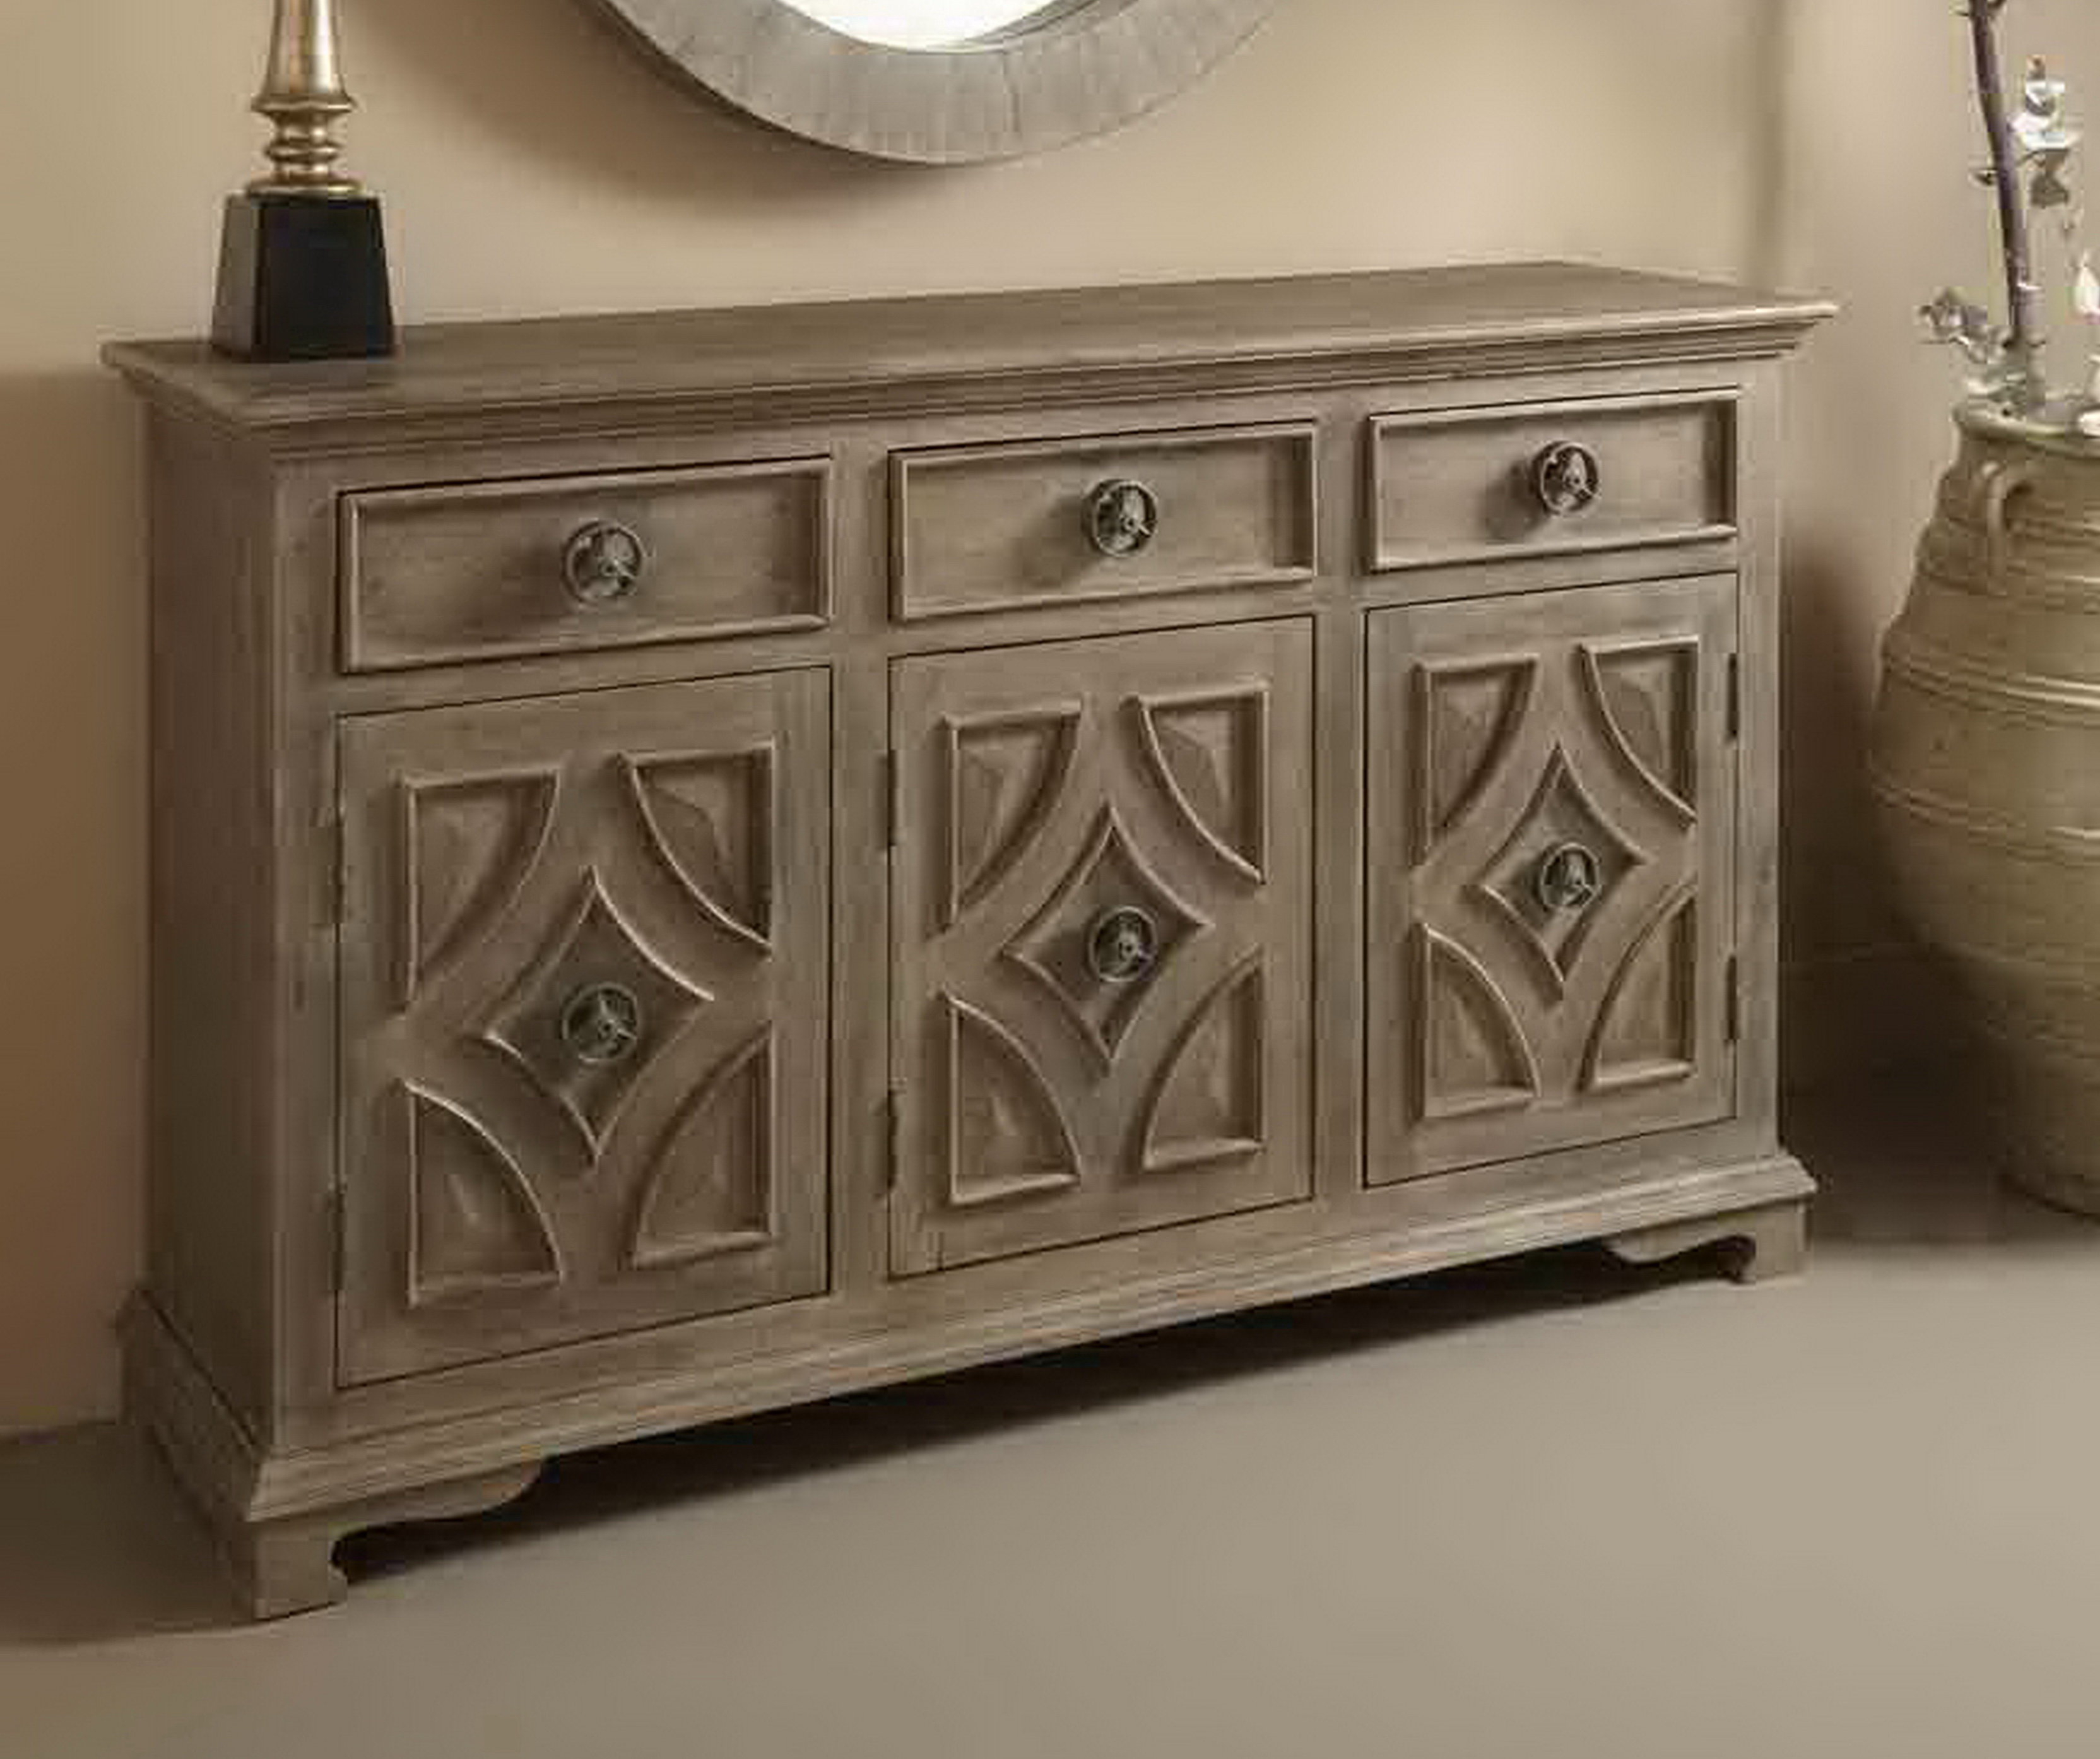 Joss & Main Throughout Most Current Mauzy Sideboards (View 8 of 20)